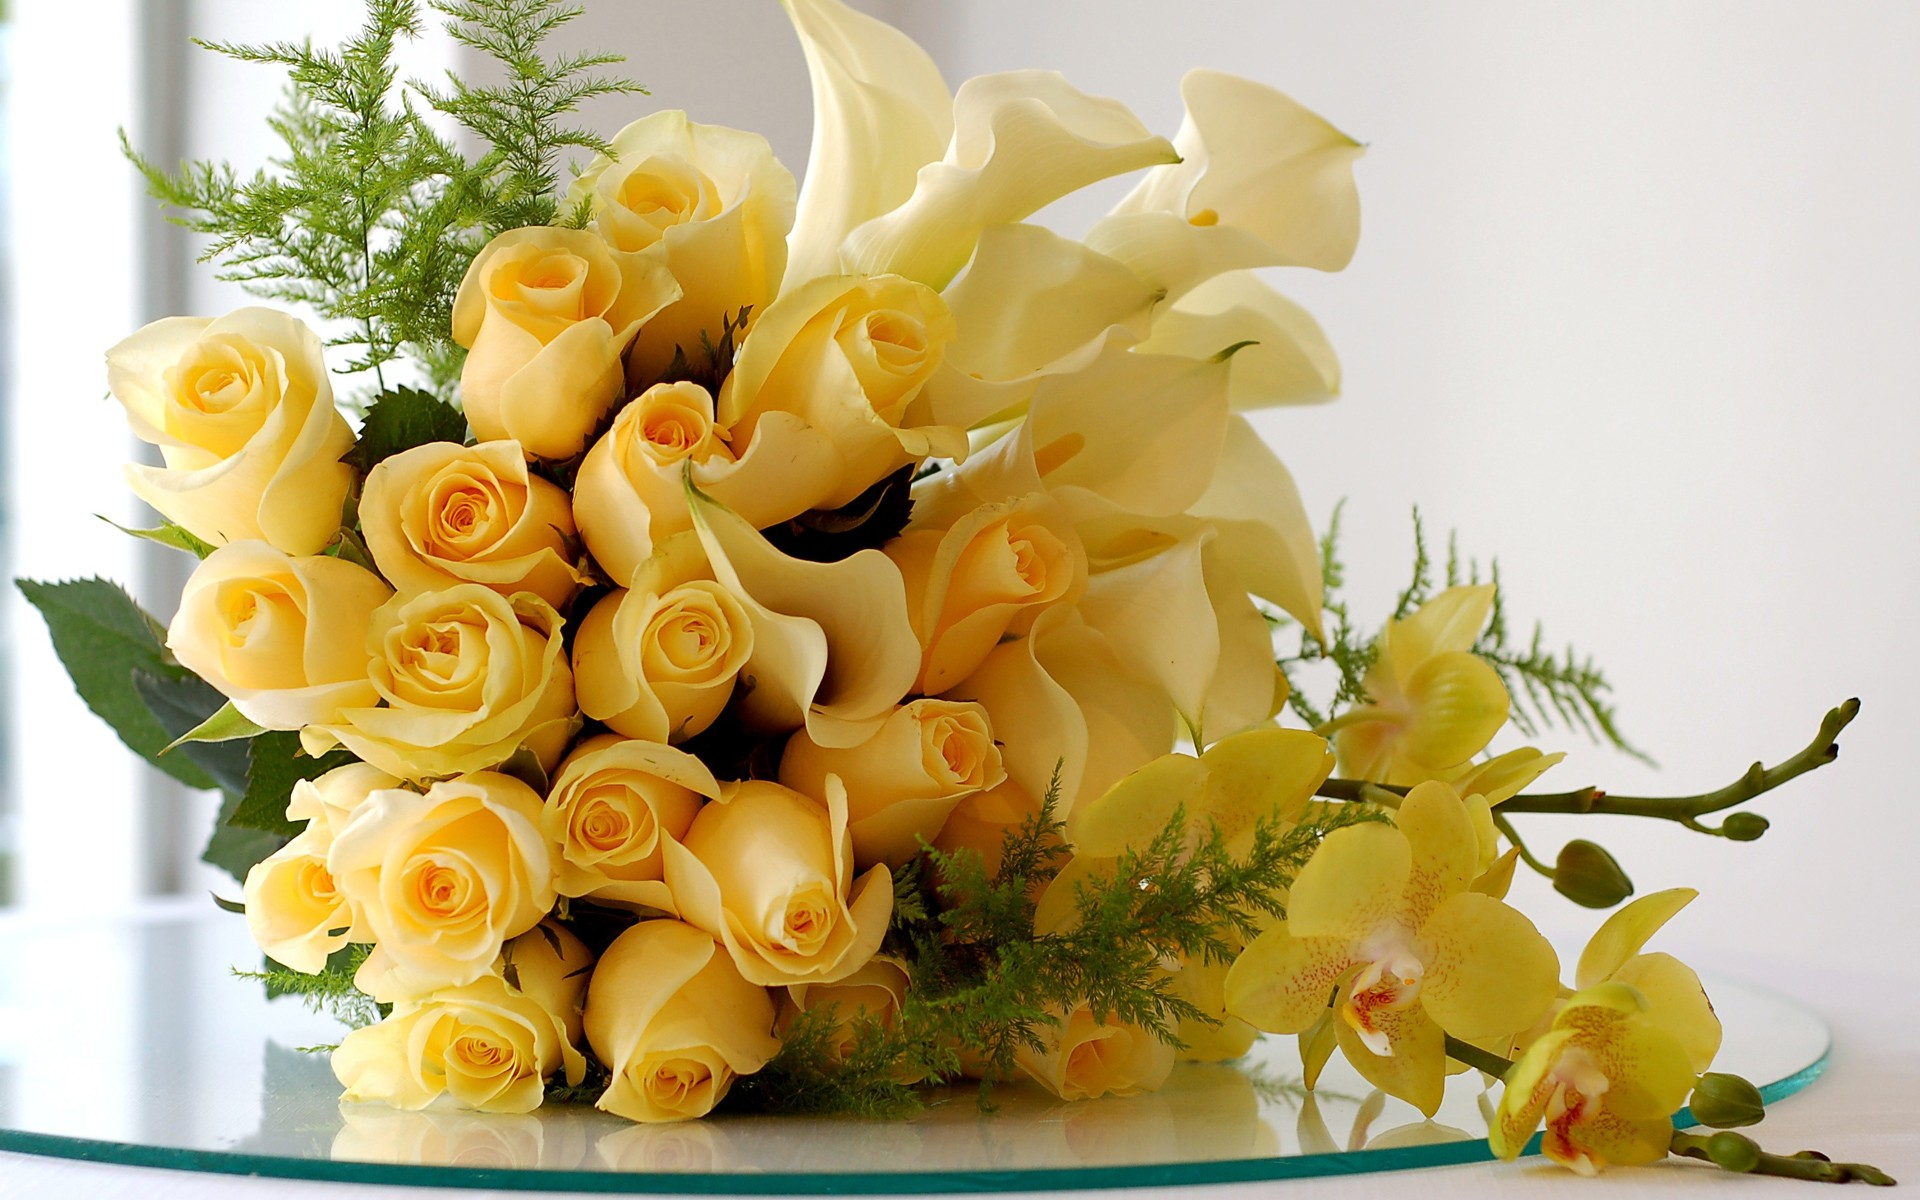 How to take care of flower bouquets to last longer taking care of flower bouquets dhlflorist Gallery